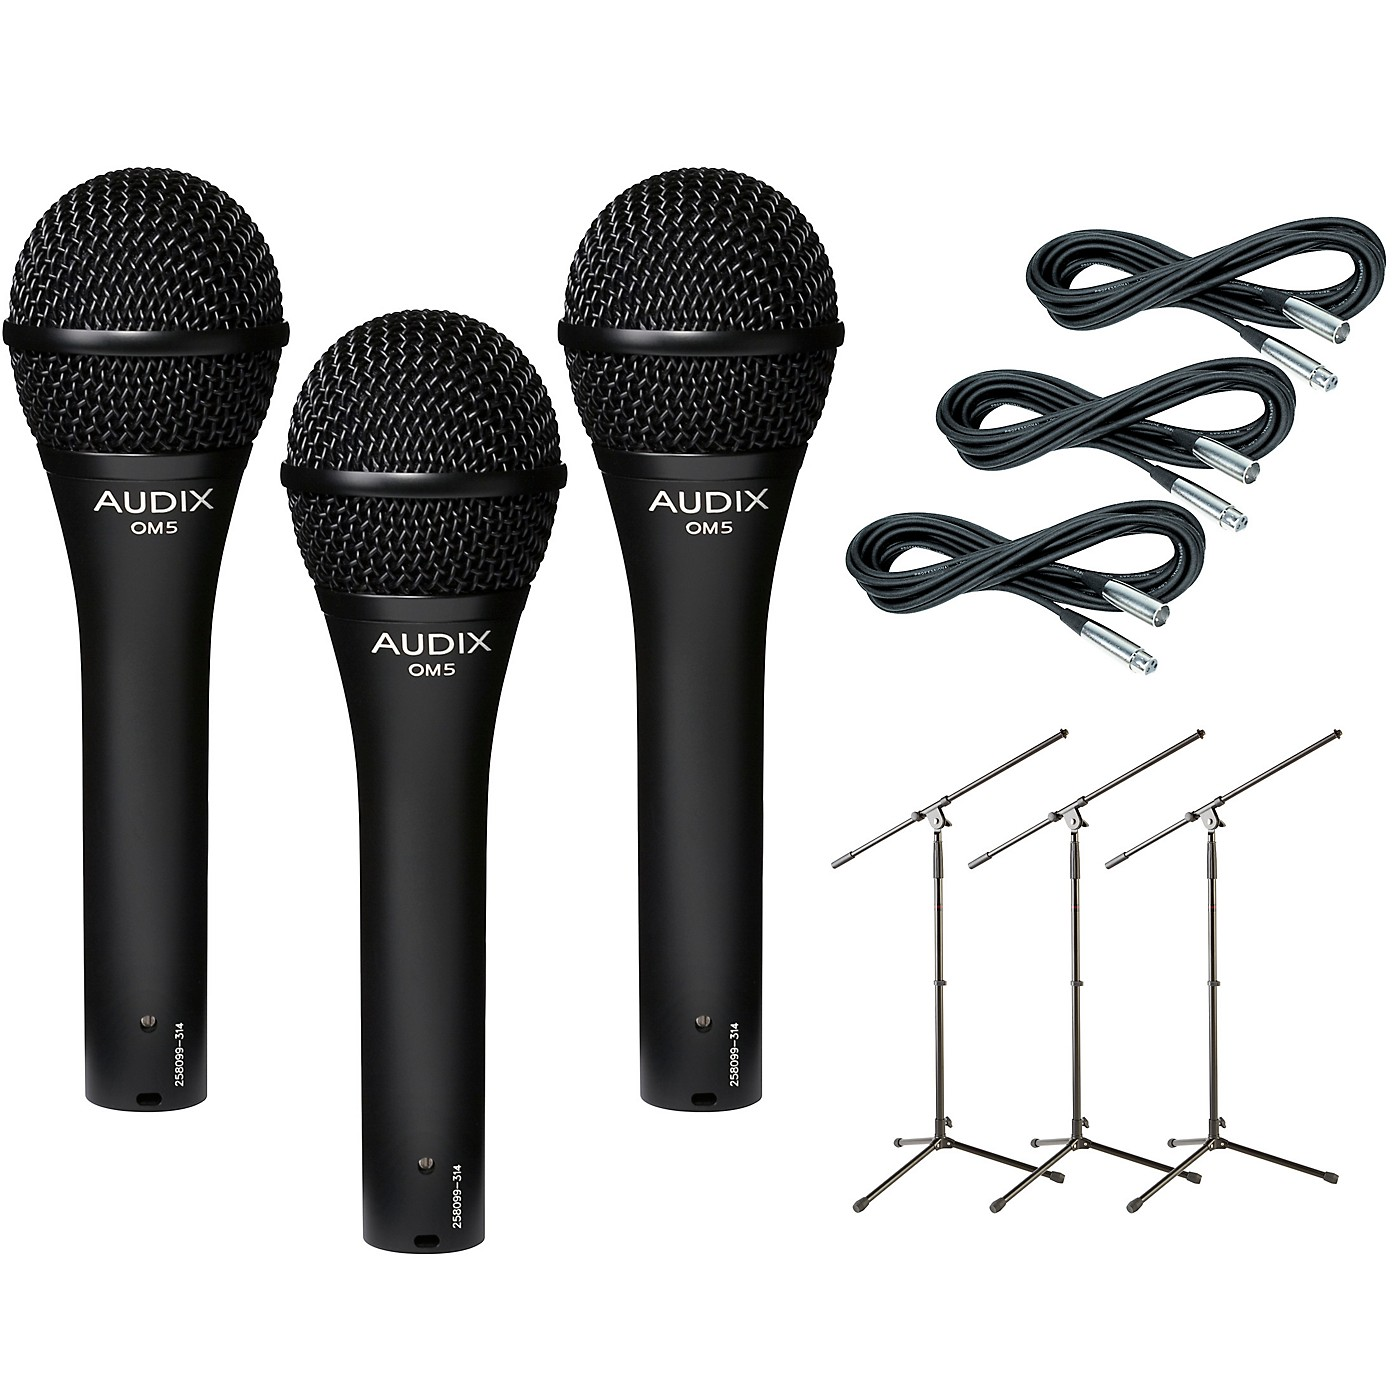 Audix OM-5 Mic with Cable and Stand 3 Pack thumbnail